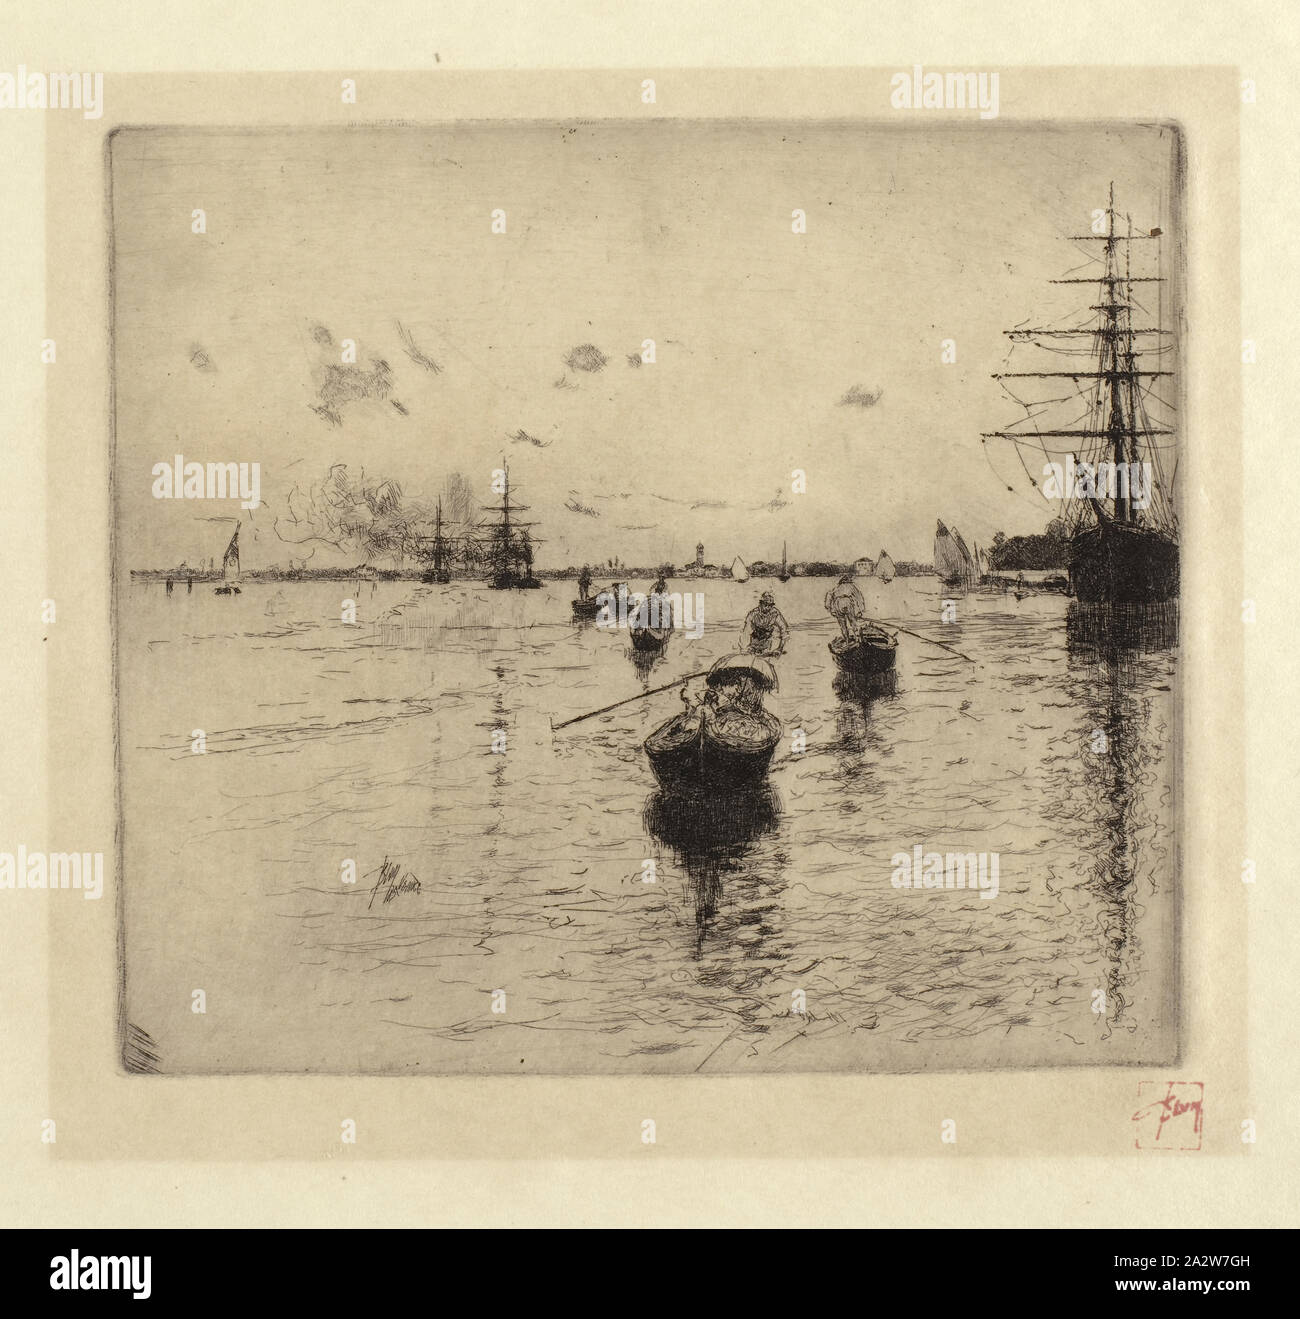 Shipping on the Venetian Lagoon, Robert Frederick Blum (American, 1857-1903), 1885, ink on paper, etching, 7-5/8 x 8-1/2 in. (image) 12-1/2 x 14-1/8 in. (sheet), Stamp in red ink, below image, l.r.: Blum Stock Photo